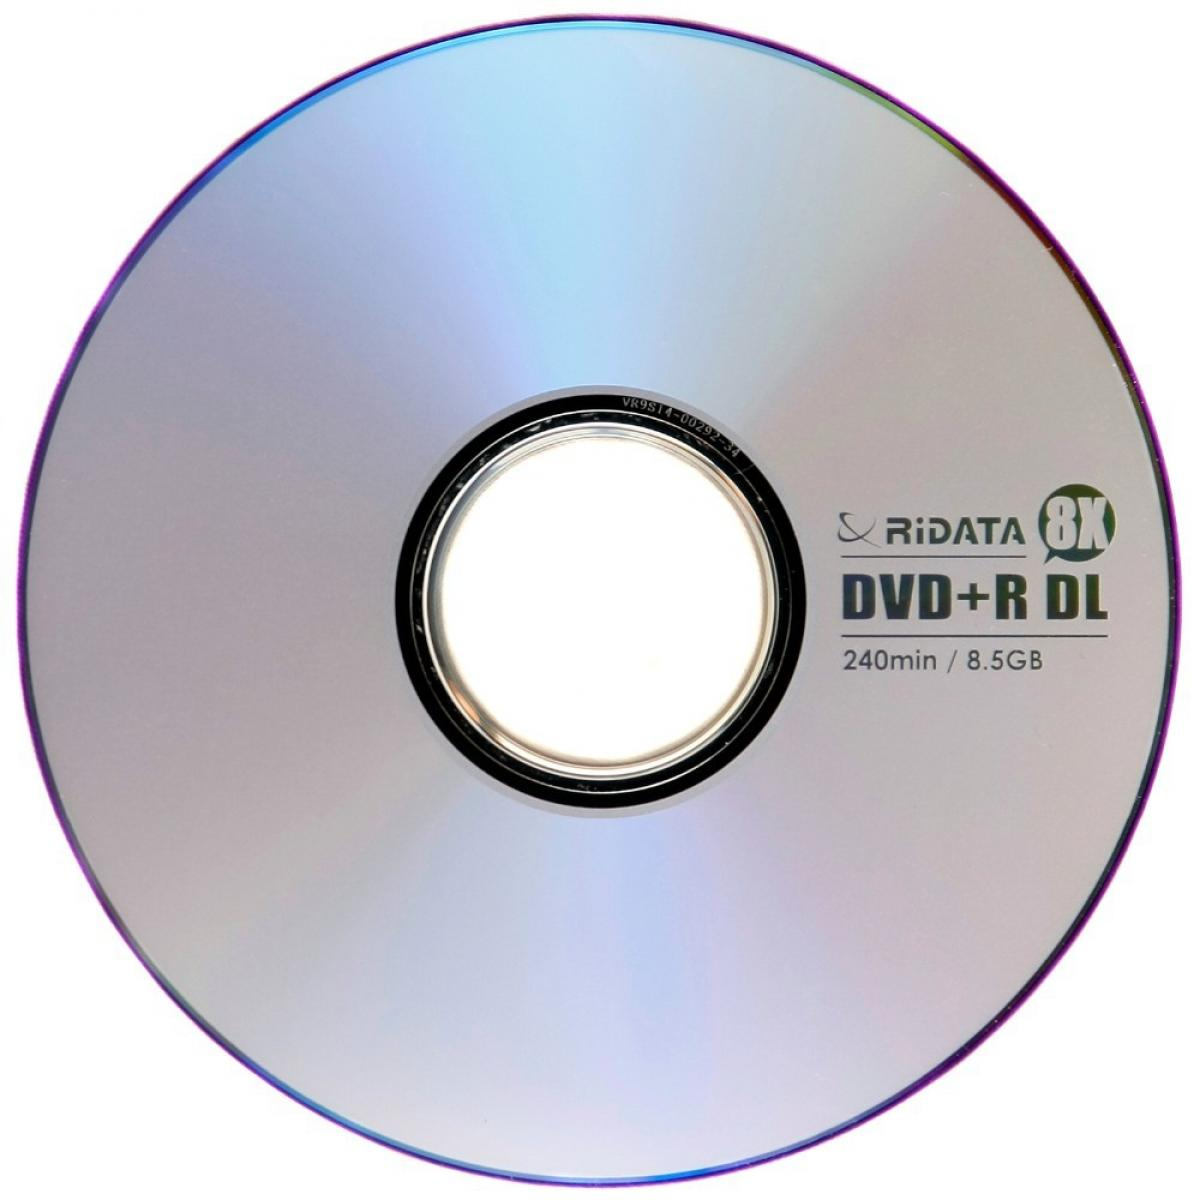 CD BLANK DVD+R DOUBLE LAYER RIDATA 8.5G 8X ,Blank CD & DVD